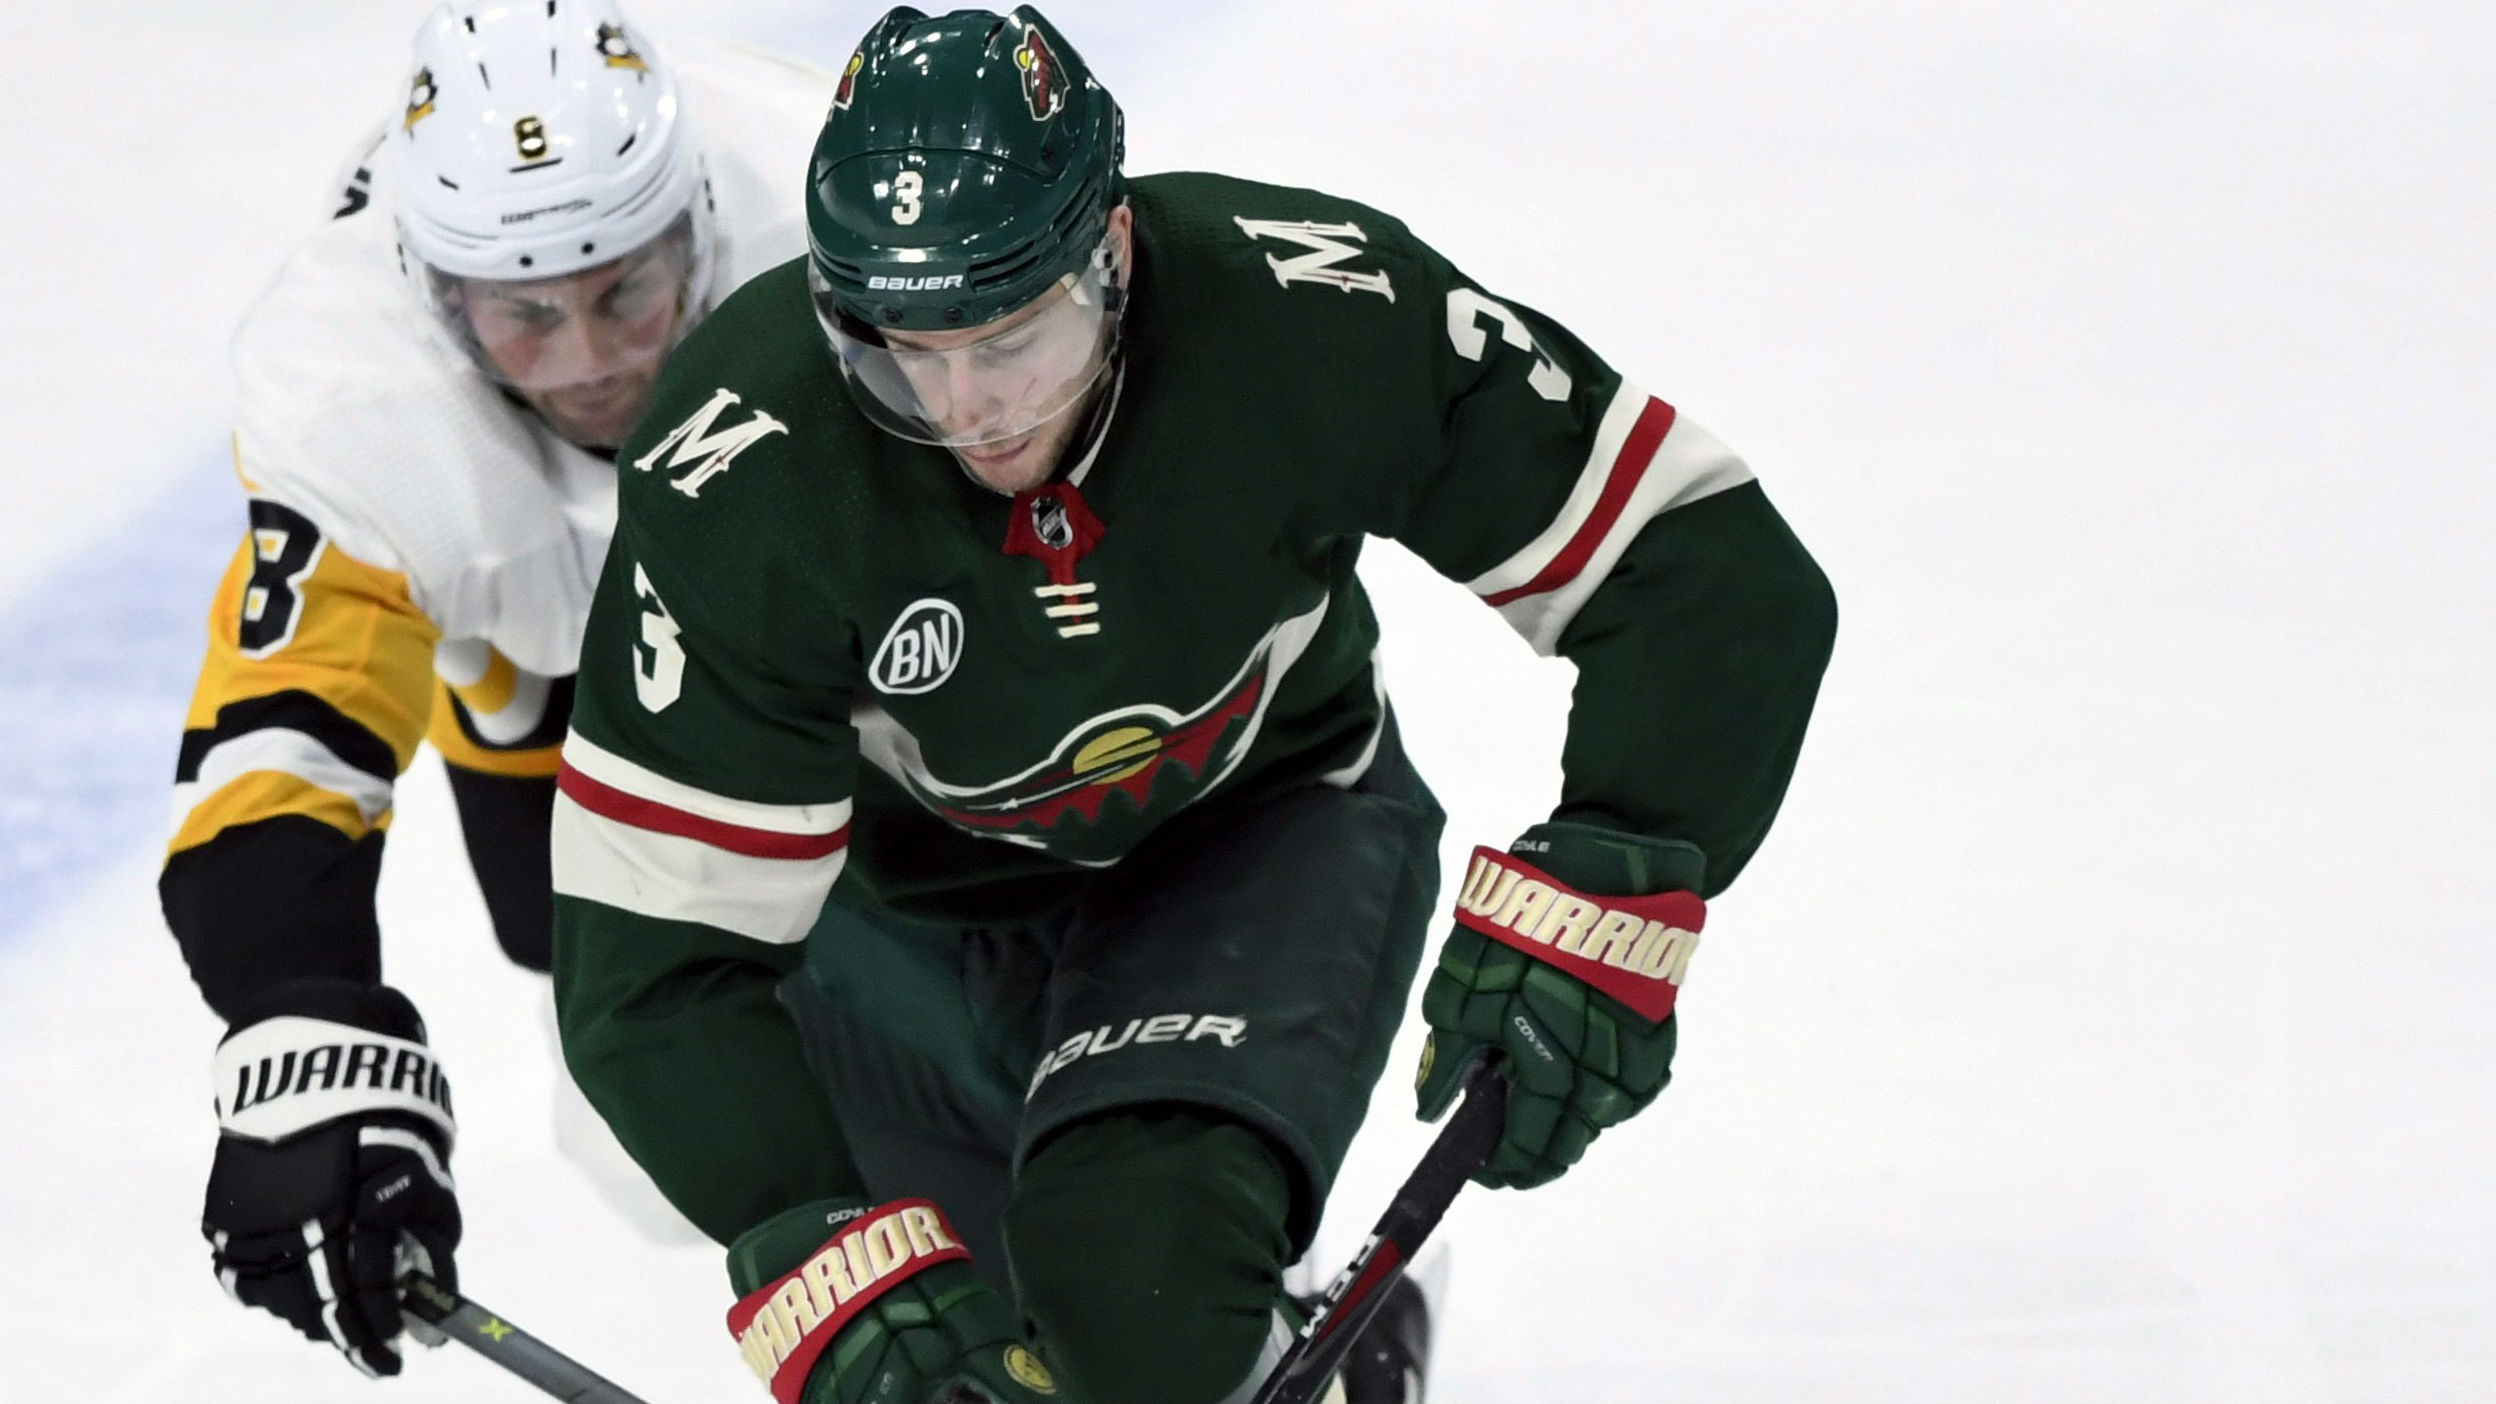 Playing for Bruins could get Charlie Coyle back in top form